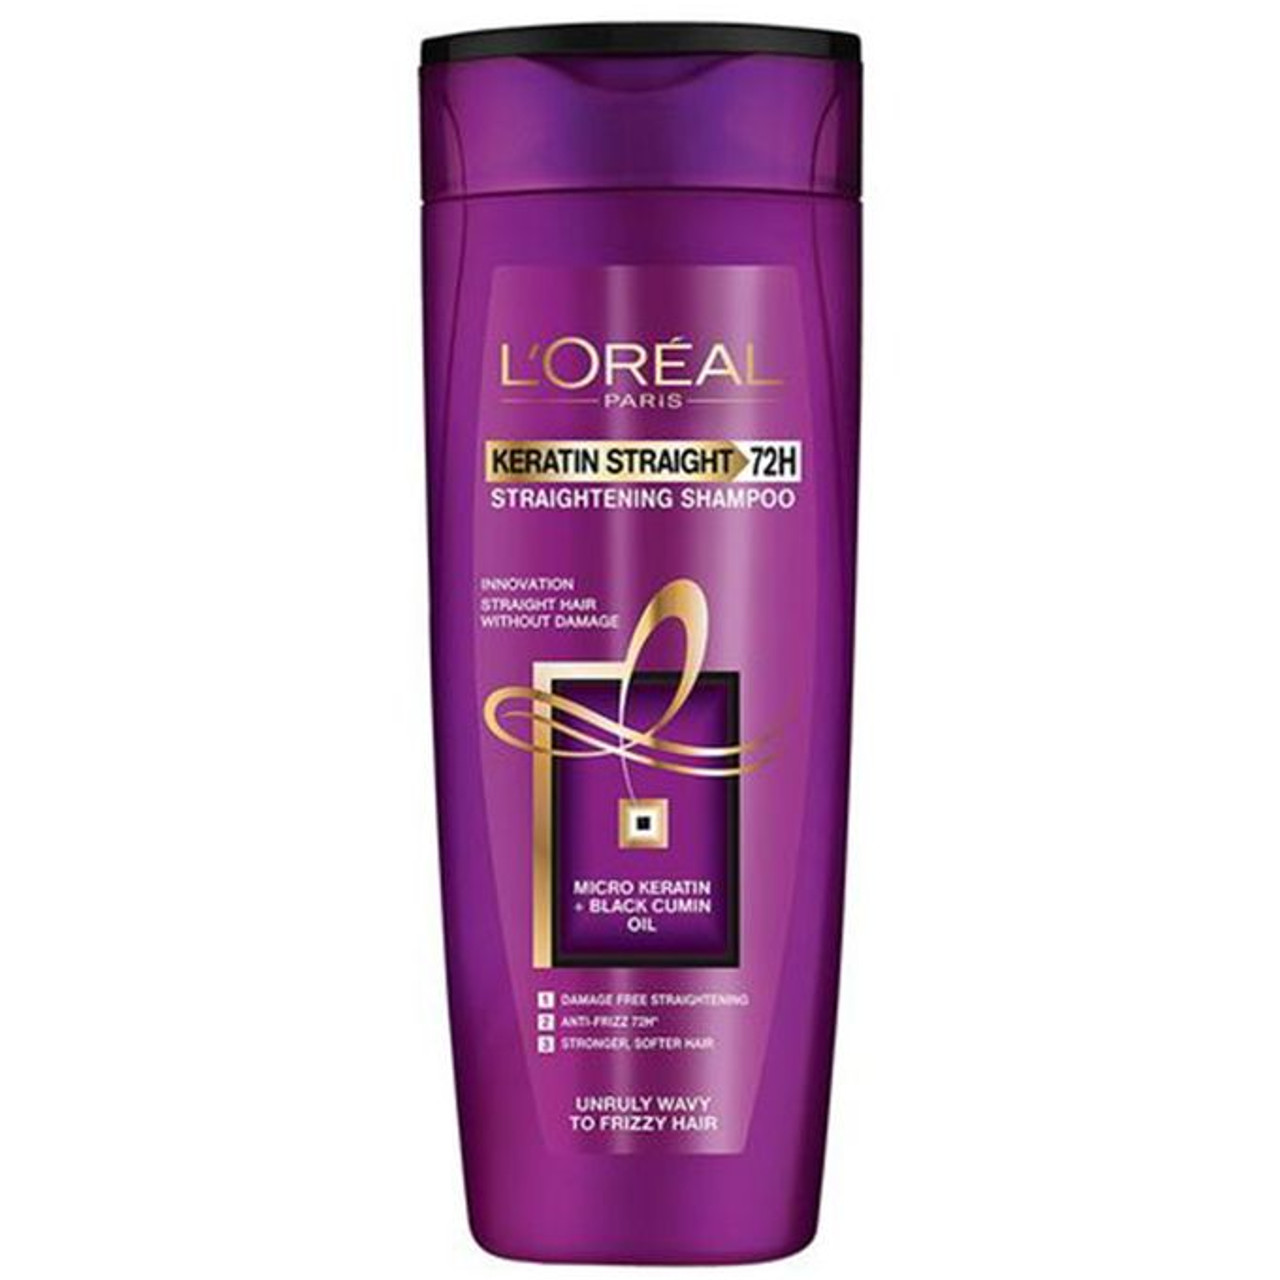 L 39 oreal paris keratin straight 72h shampoo 360ml livewell pk for Loreal salon price list